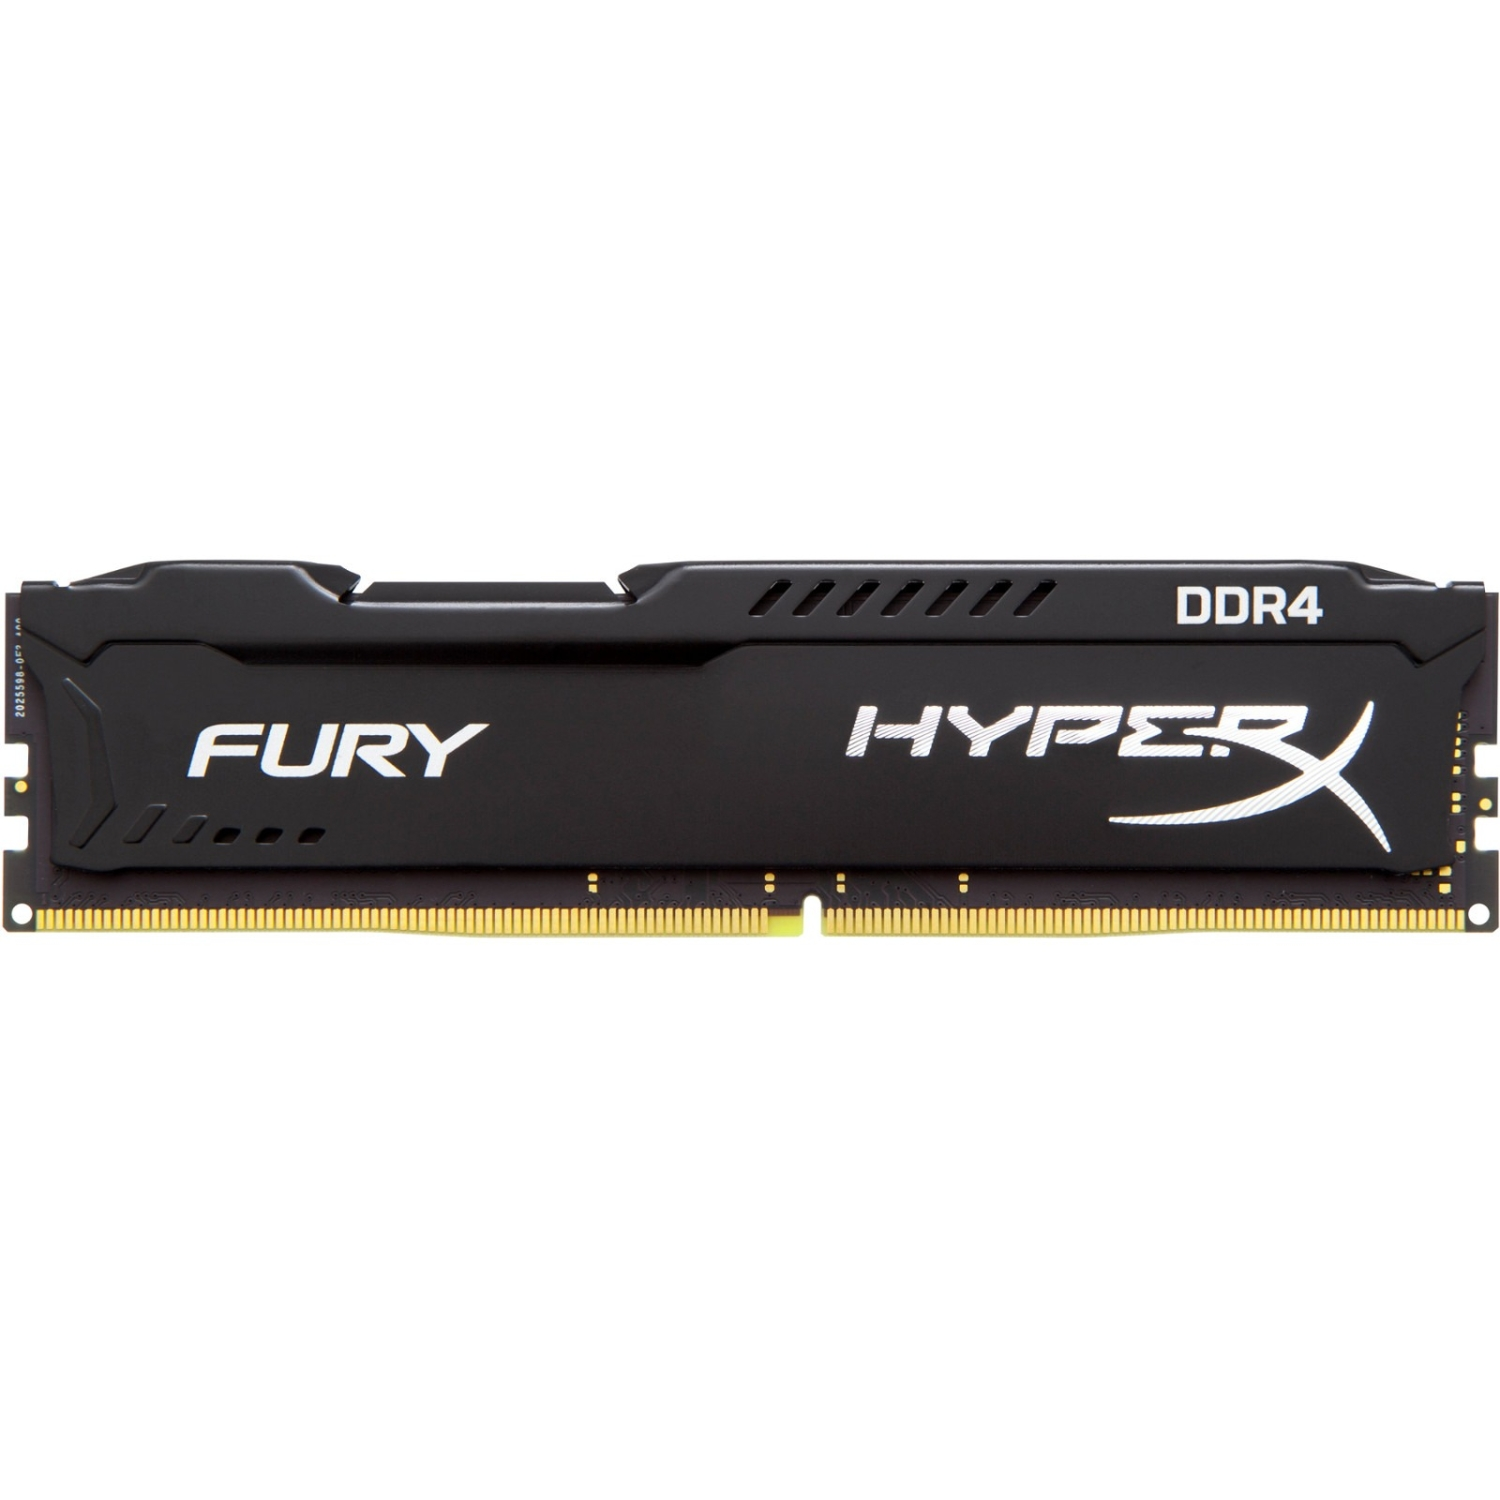 Kingston FURY Memory Black - 64GB Kit (4x16GB) - DDR4 2400MHz CL15 DIMM - 64 GB (4 x 16 GB) - DDR4 SDRAM - 2400 MHz -